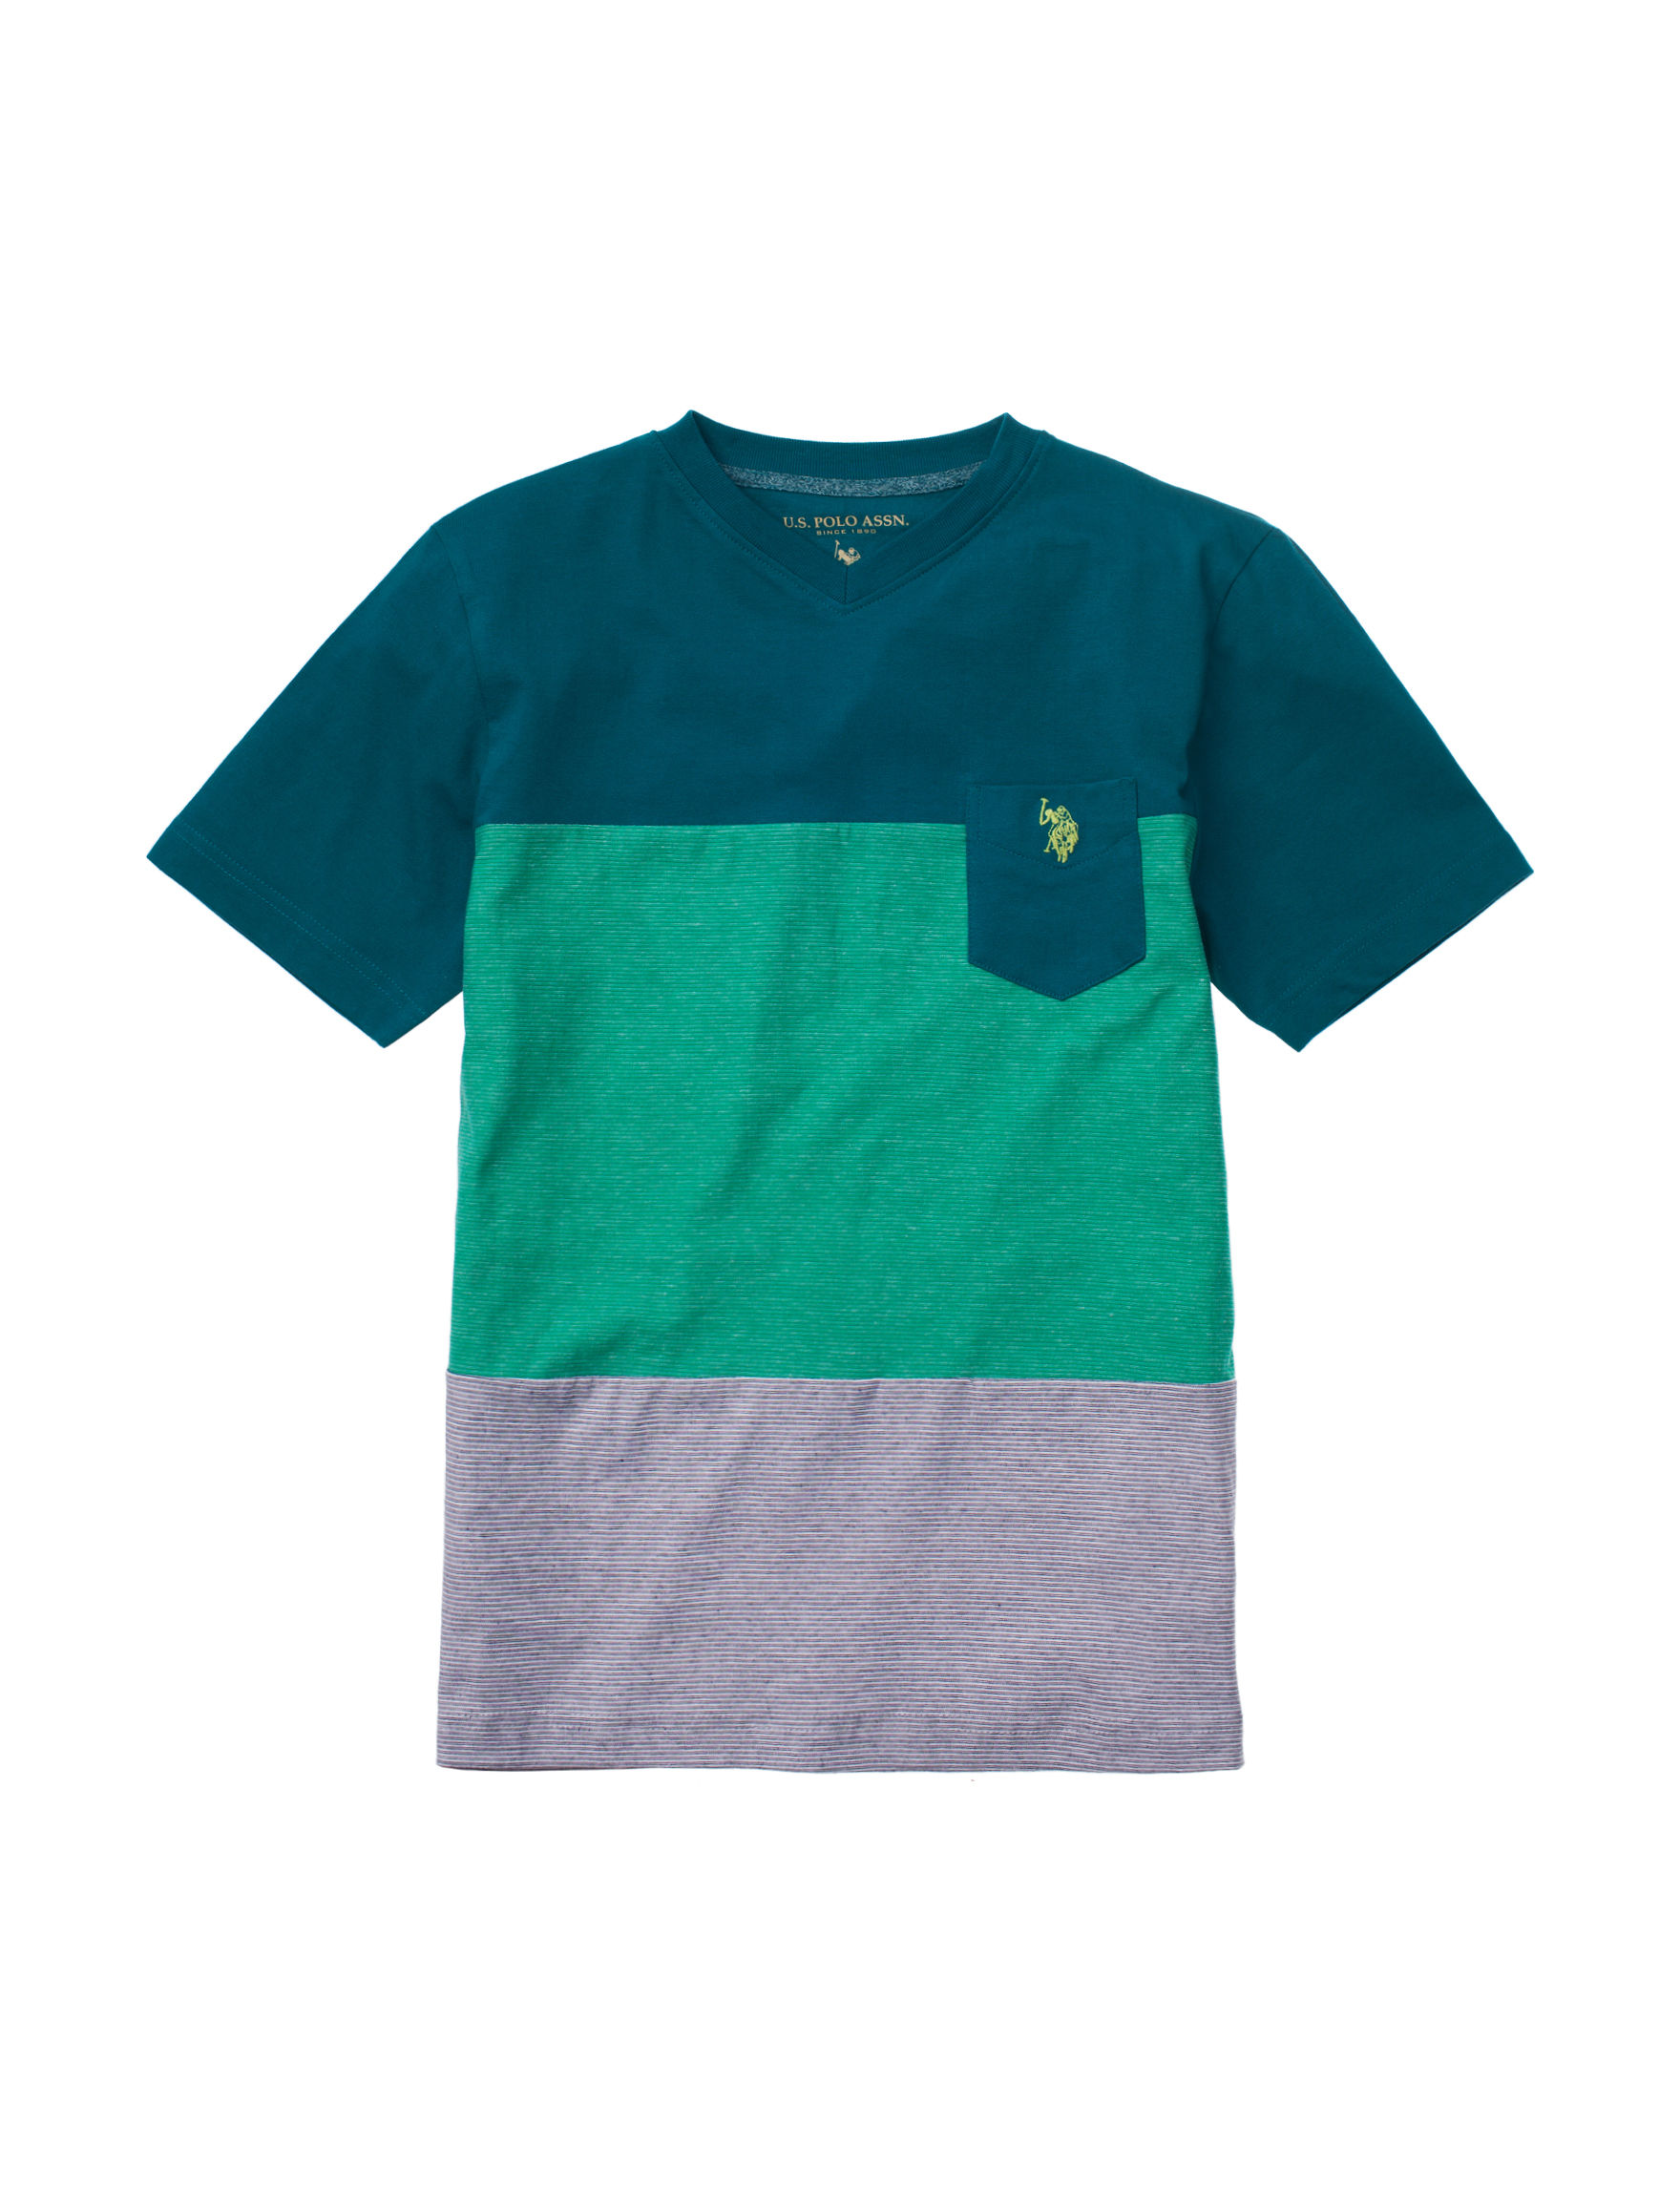 U.S. Polo Assn. Teal Tees & Tanks